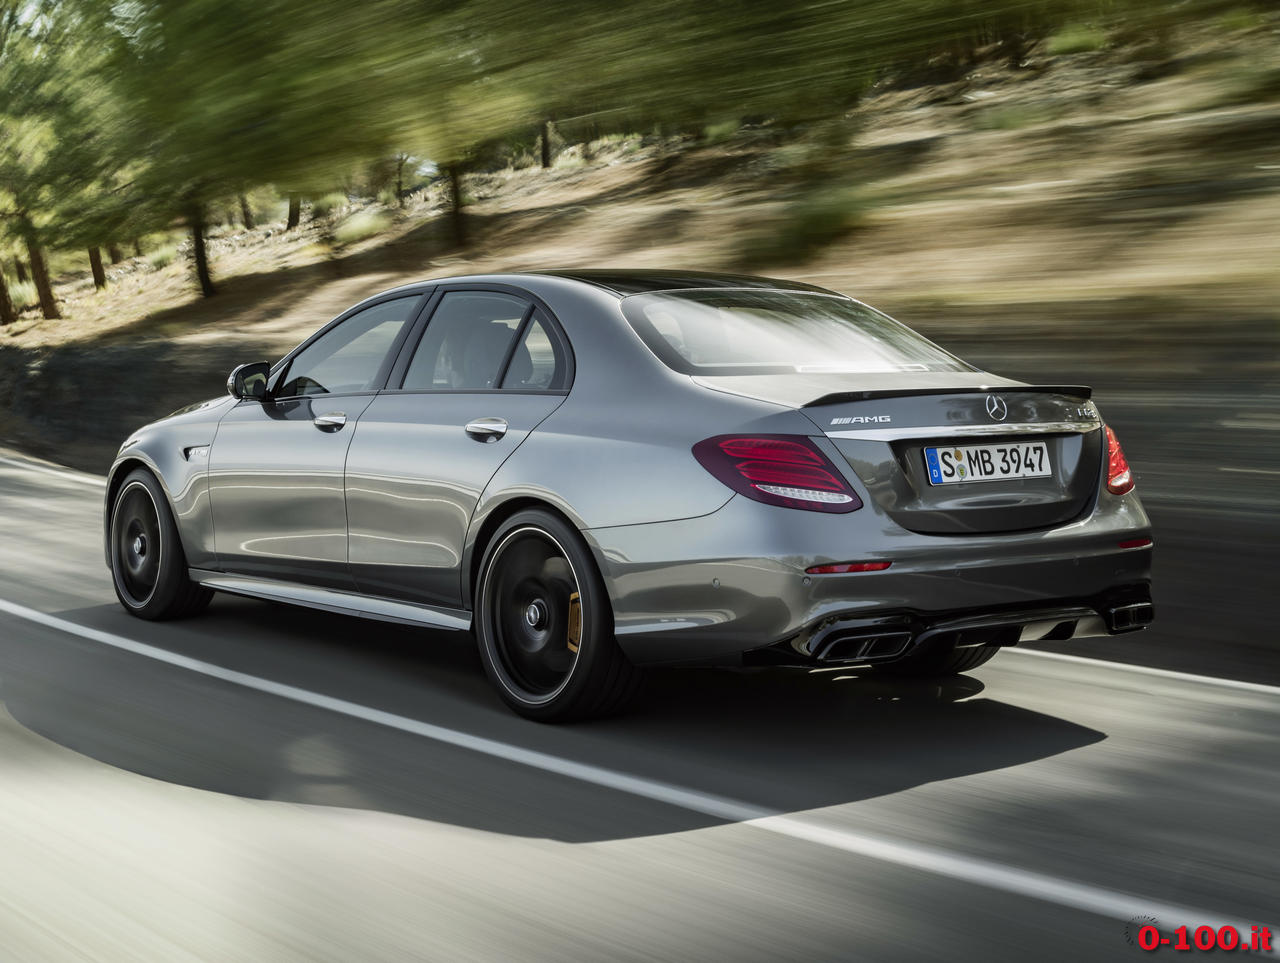 mercedes-amg-e-63-4matic-ed-e-63-s-4matic-570-612-hp-0-100_3